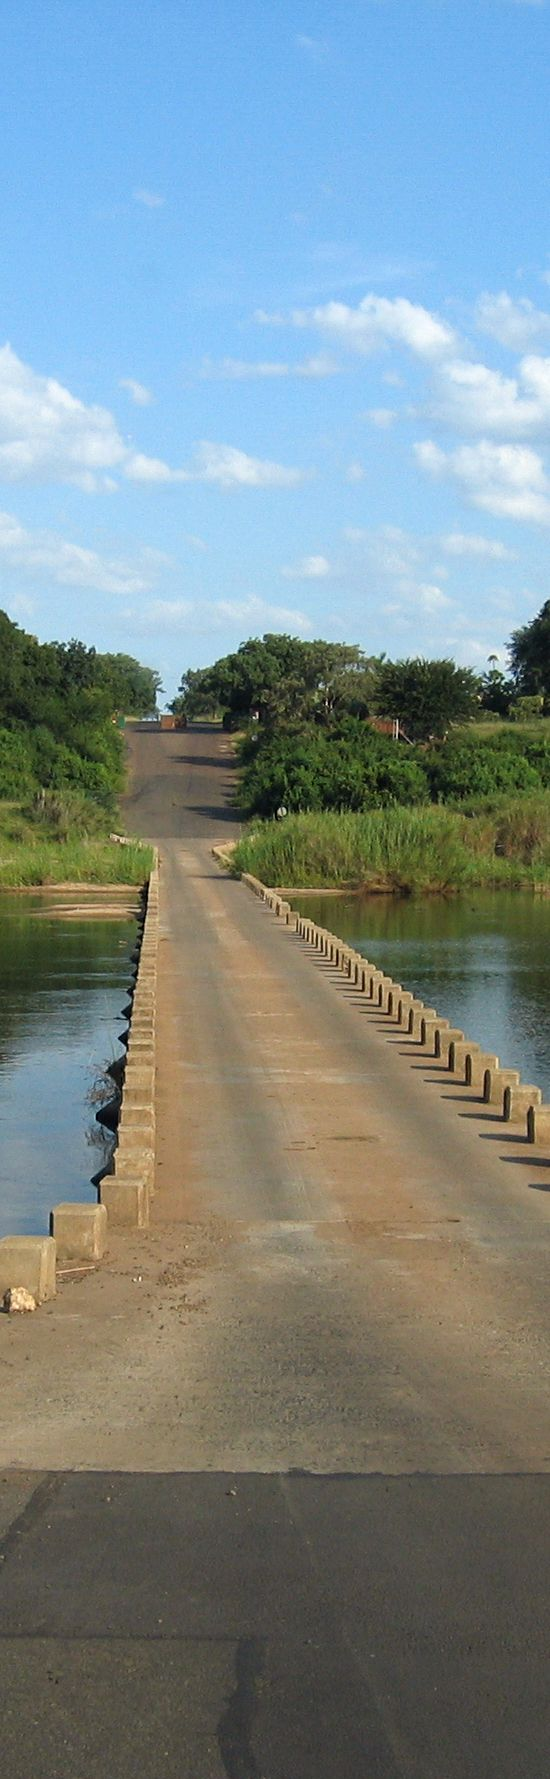 Crocodile Bridge to Kruger National Park -One Of largest game reserves- Johannesburg - South Africa | Africa